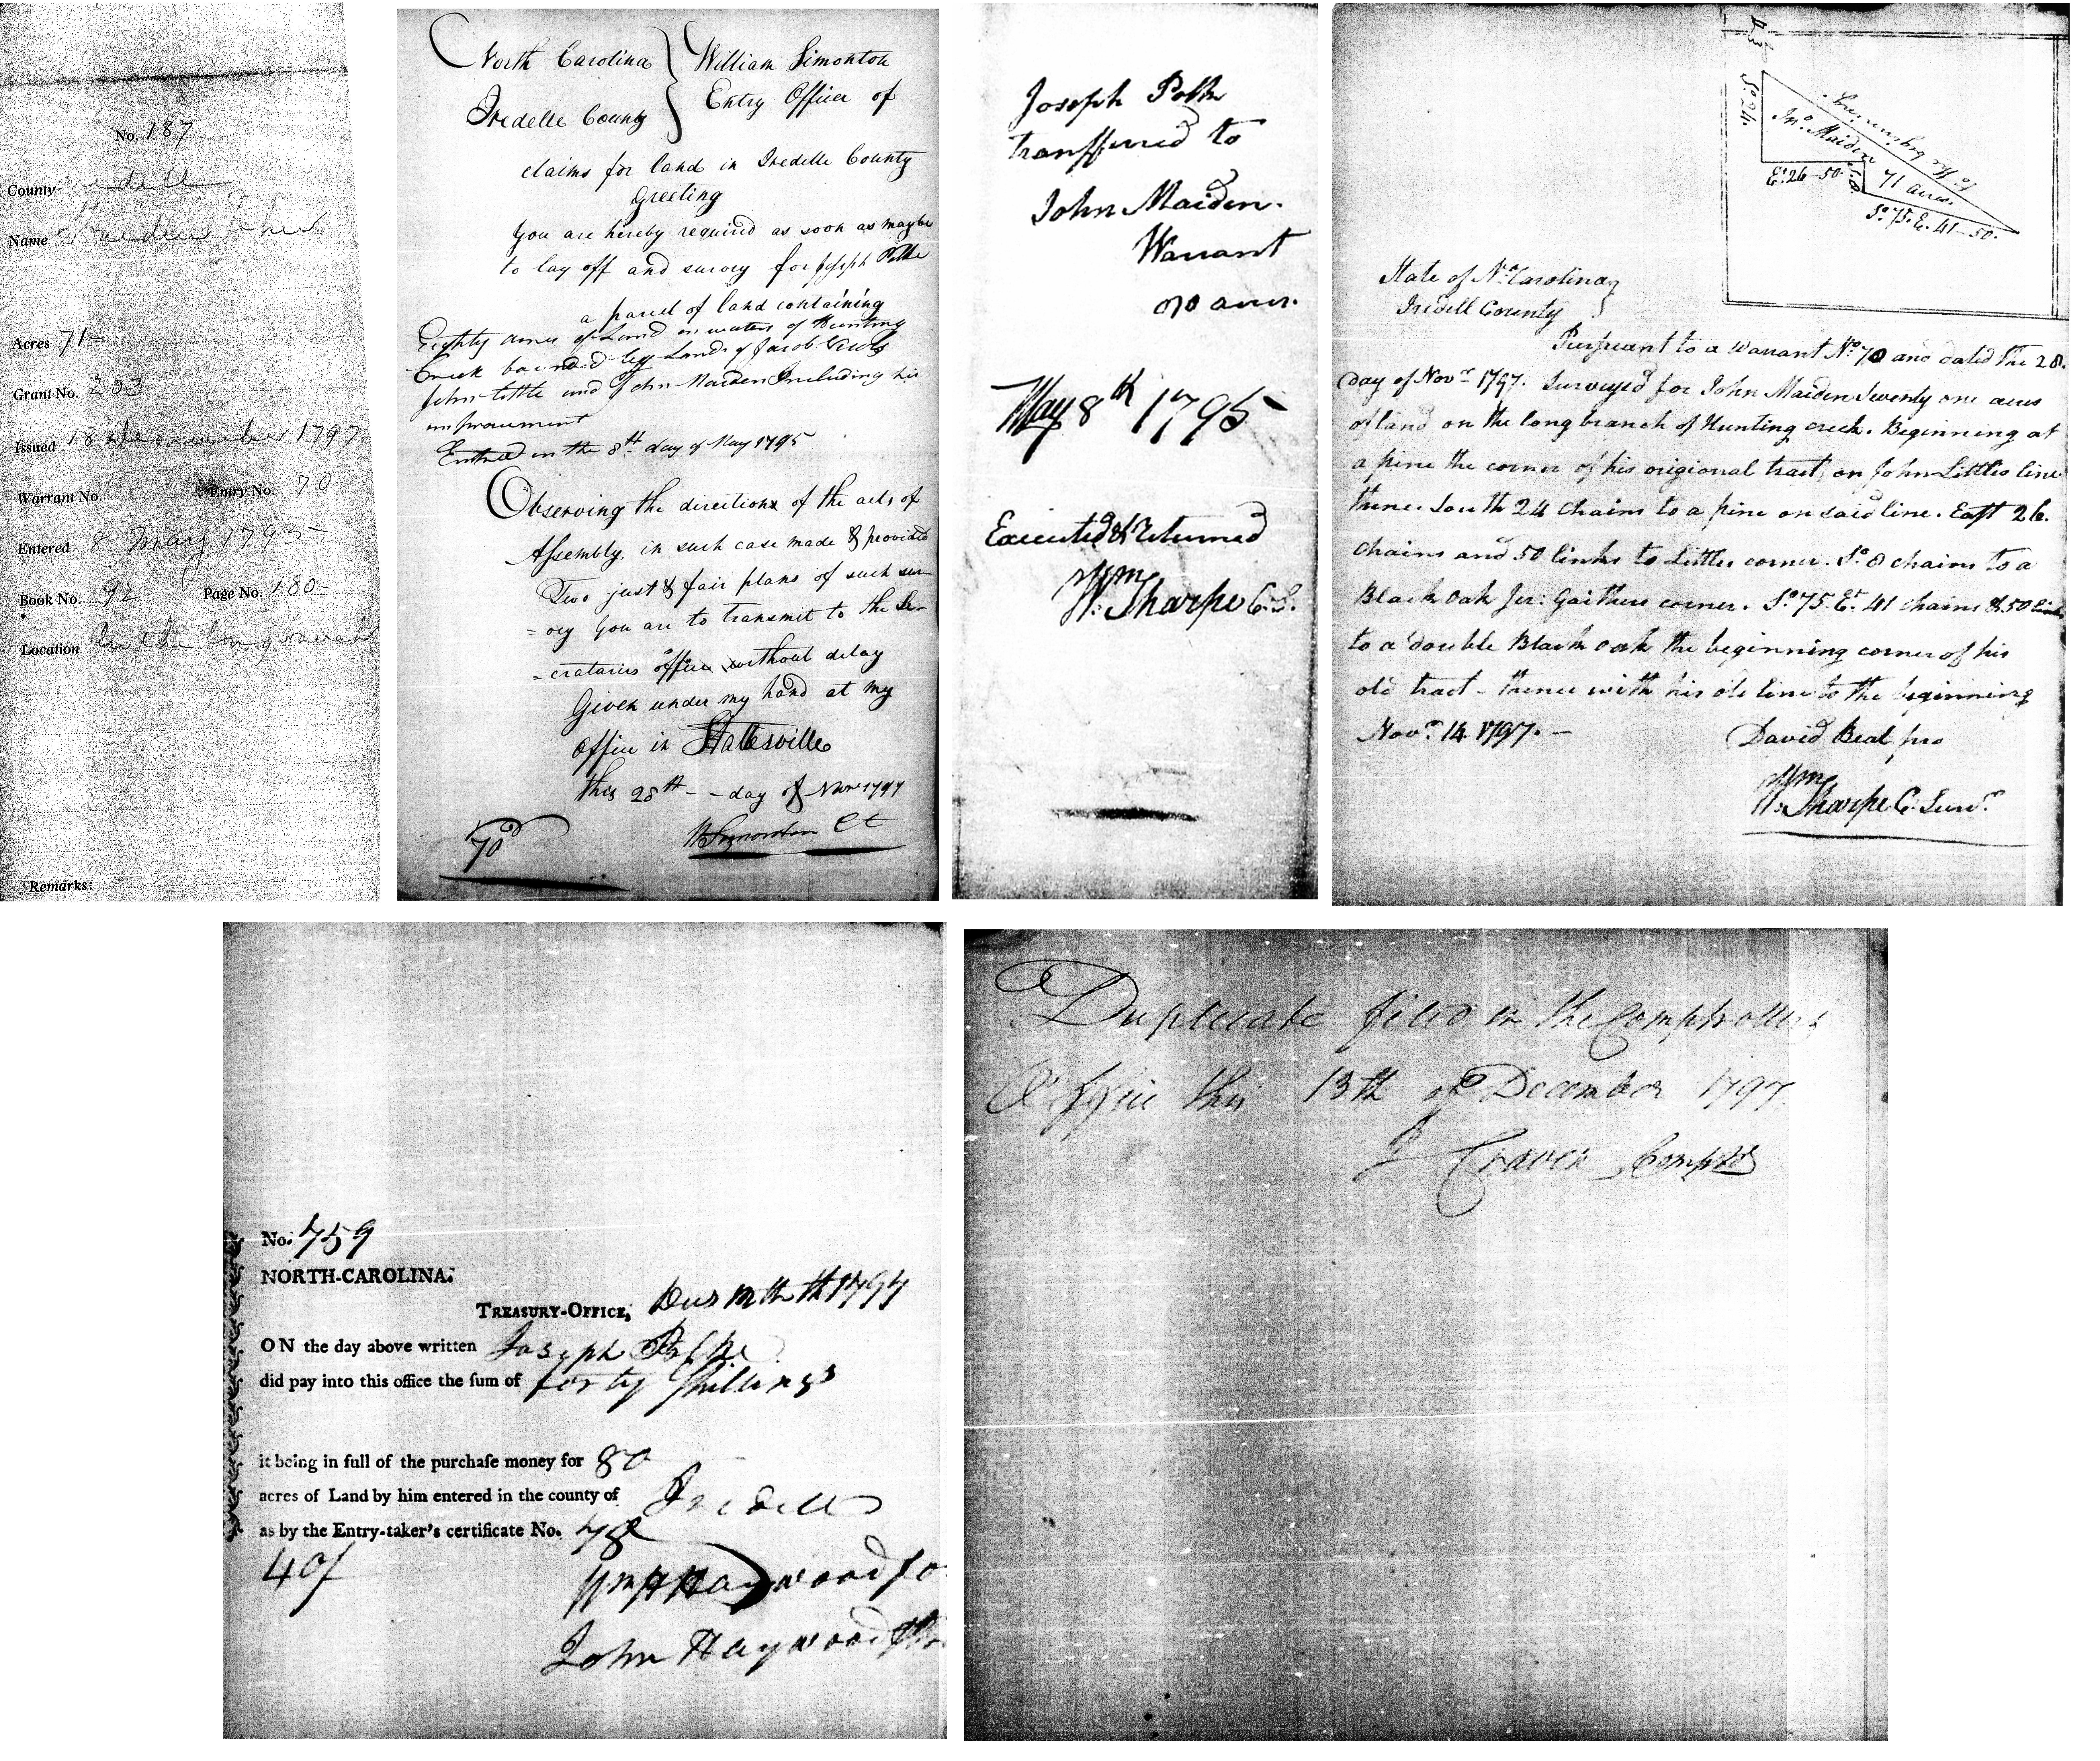 Grant #203, issued 18 December 1797, entered 8 May 1795, Book 92 Page 180,  for 71 acres on the long branch. The curious part of this grant is that it  was ...